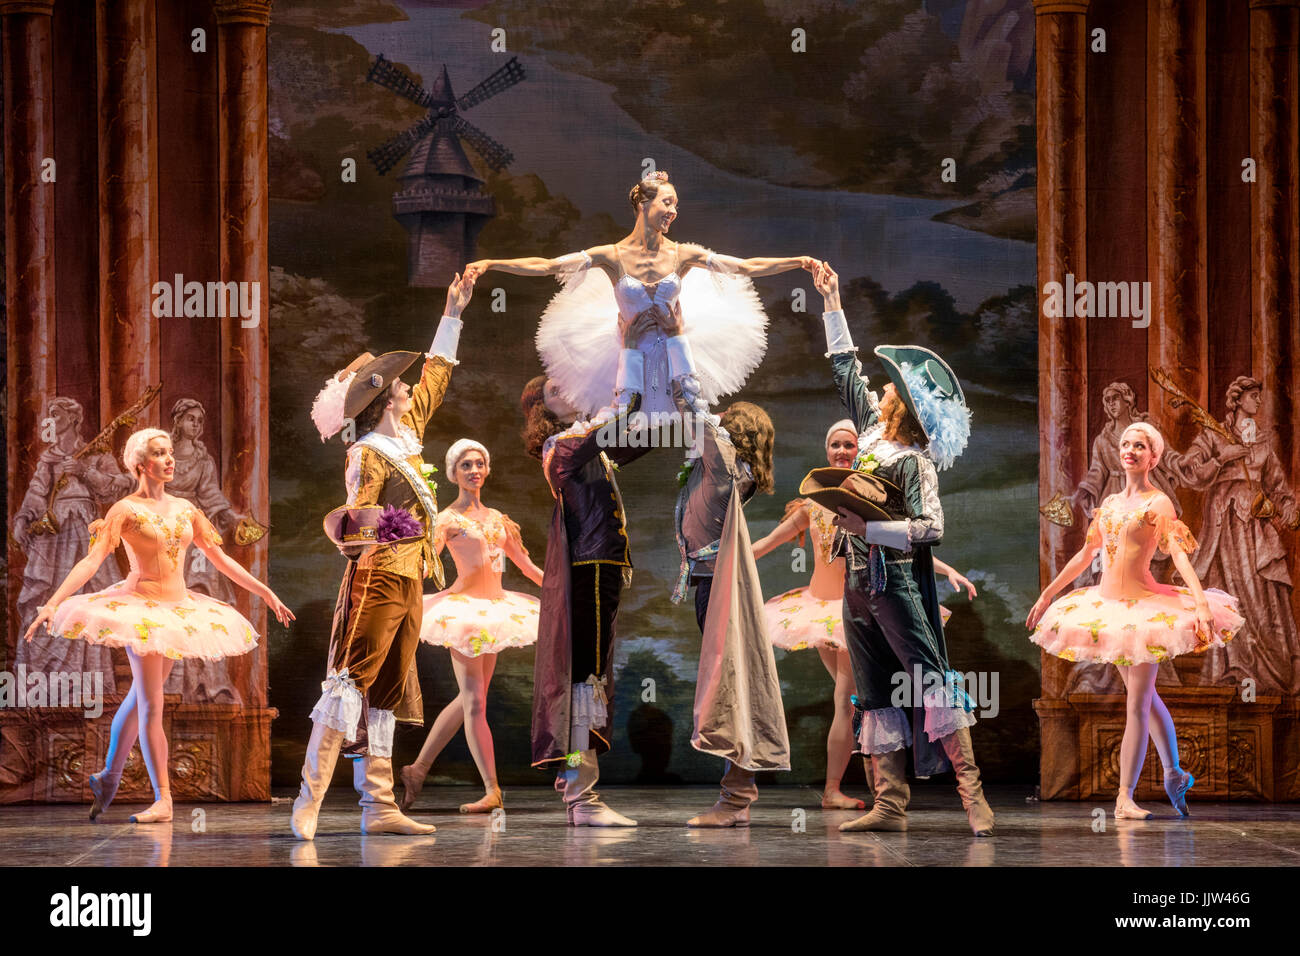 Scene from the ballet 'Sleeping Beauty' of the Ballet Theater of Classical Choreography of Elik Melikov - Stock Image